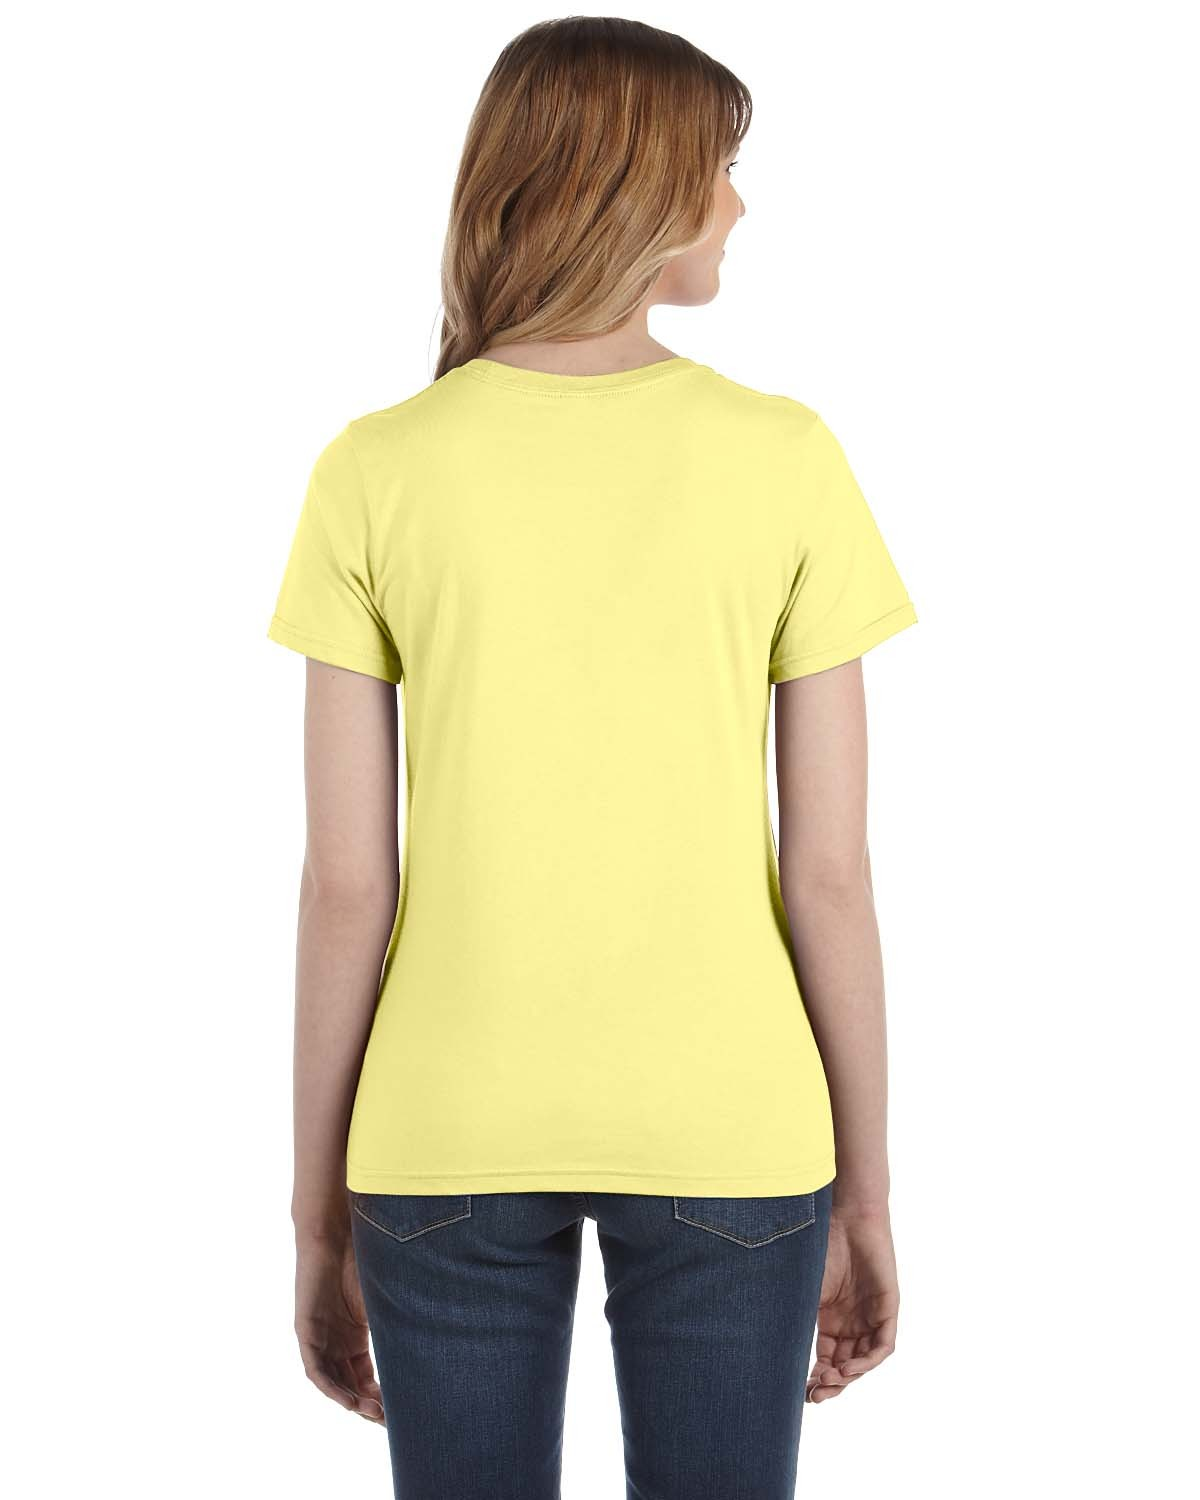 880 Anvil SPRING YELLOW